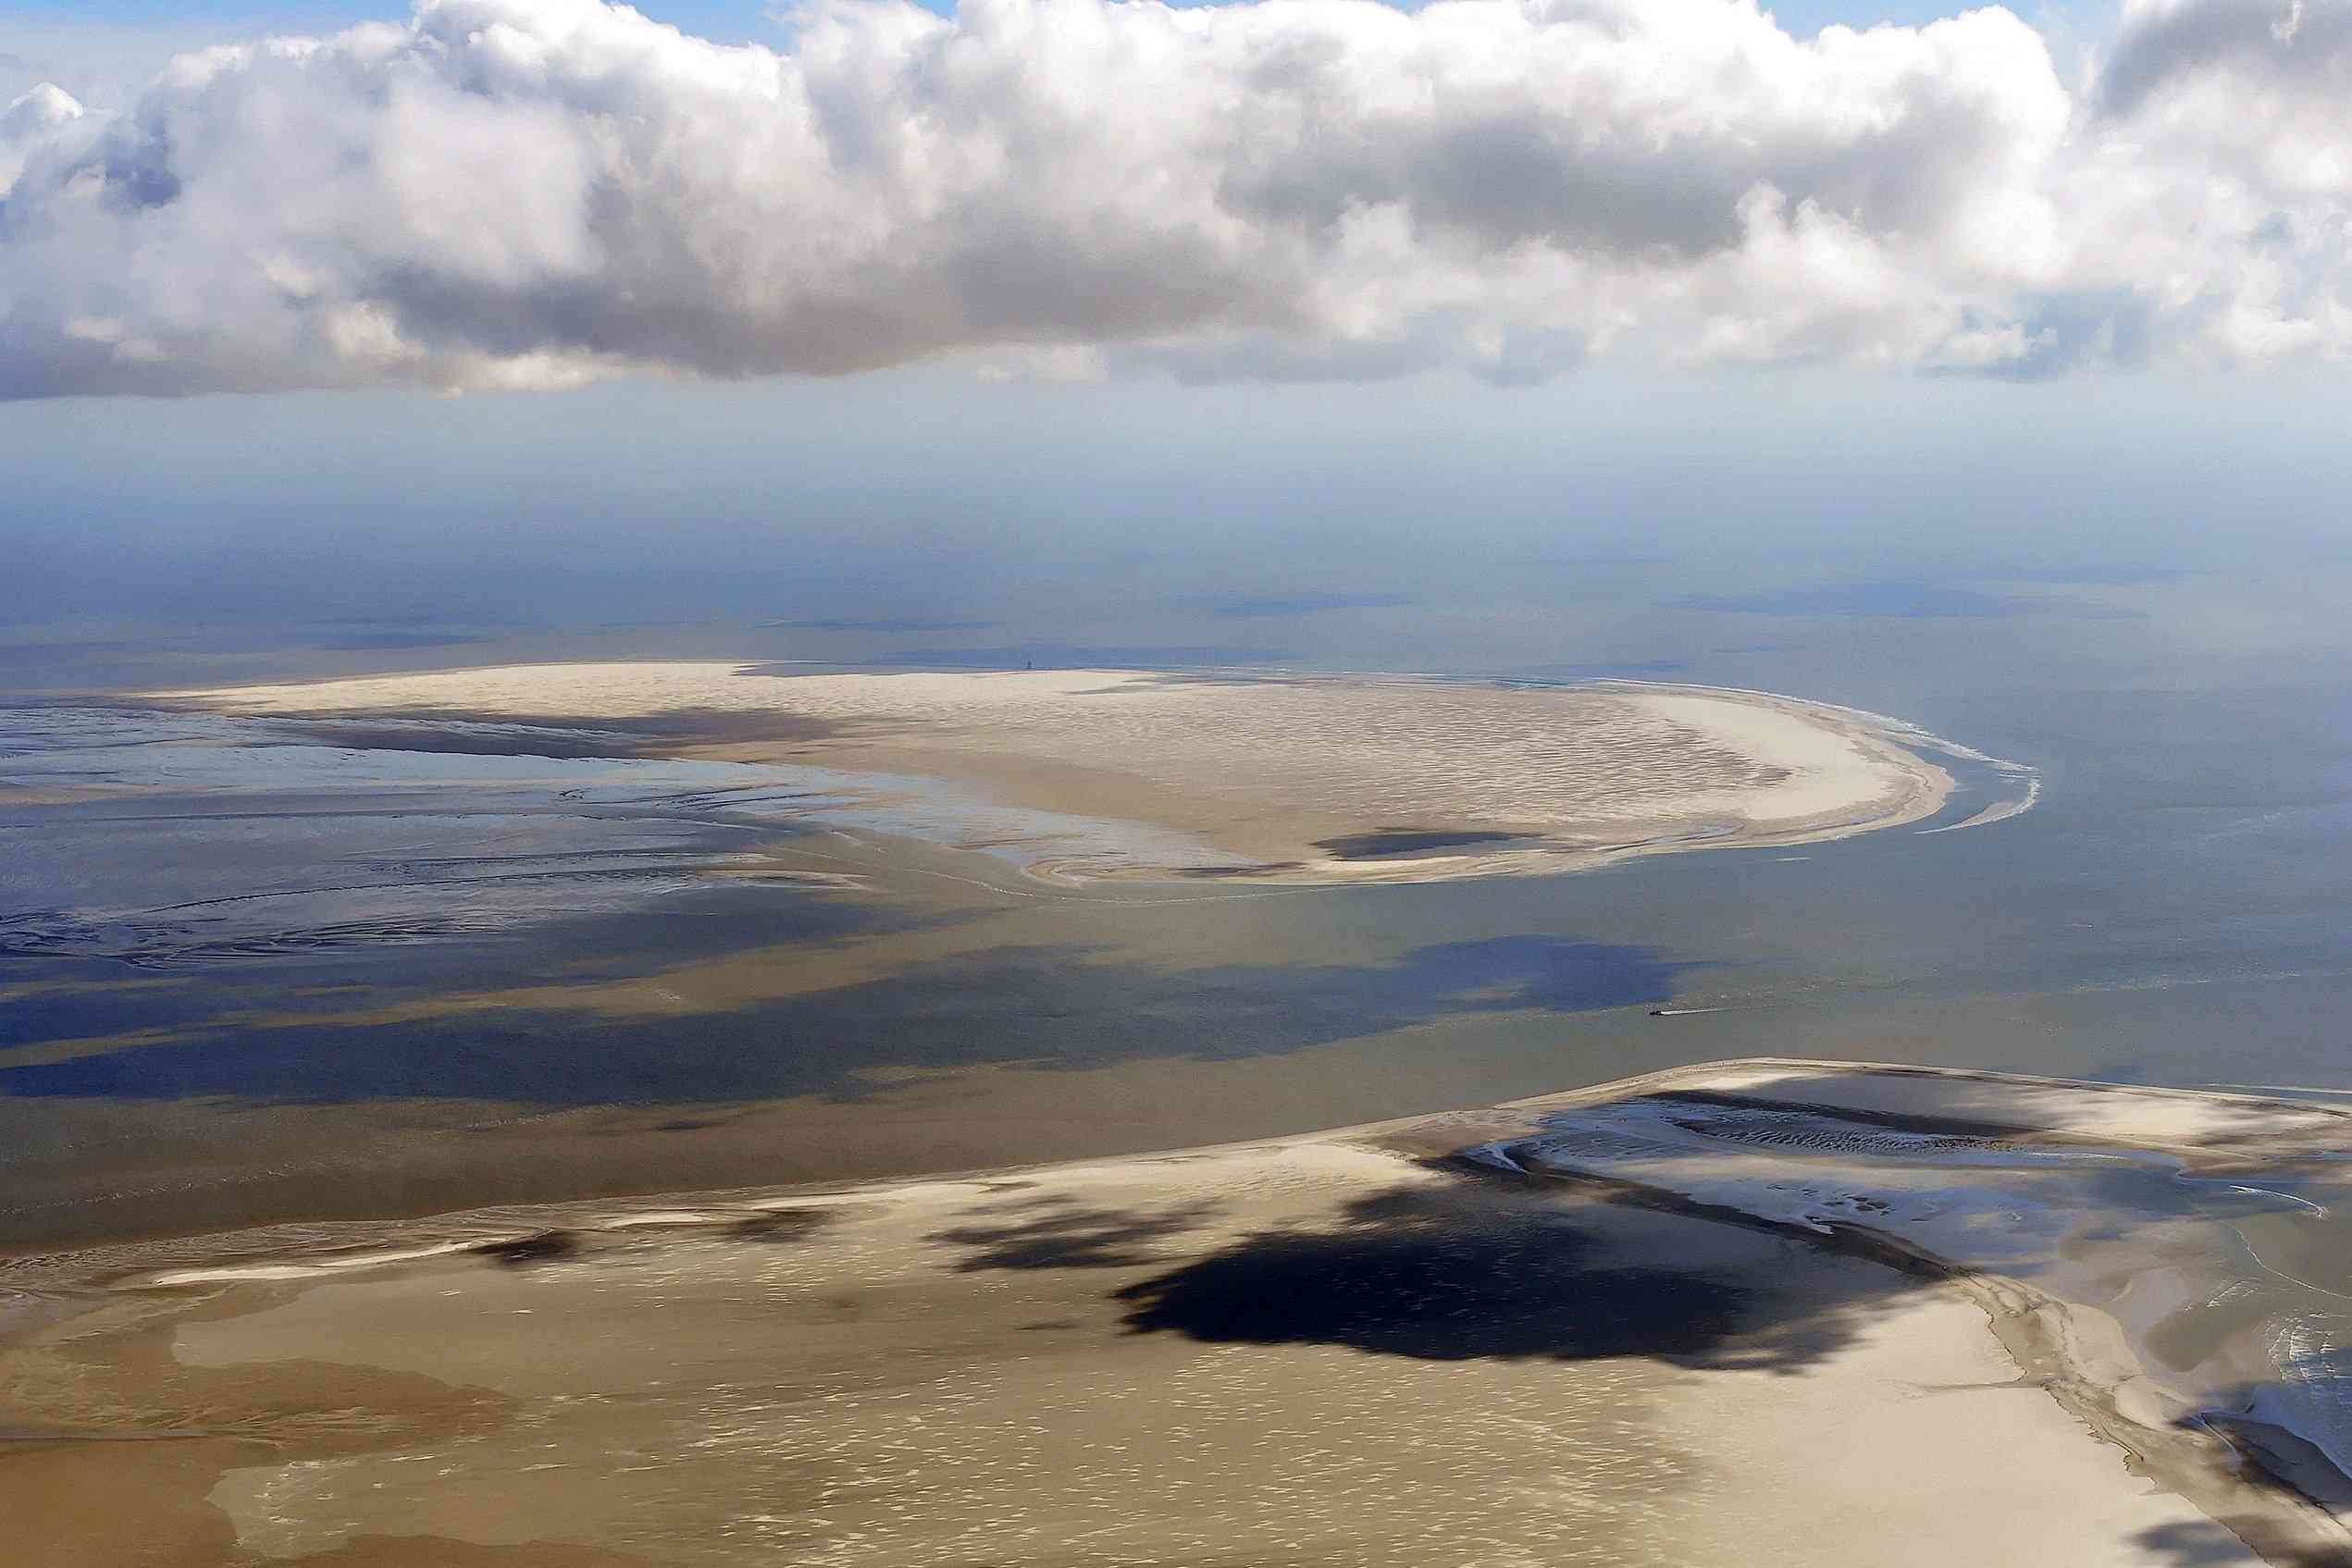 Aerial view of sand island off the coast of Germany